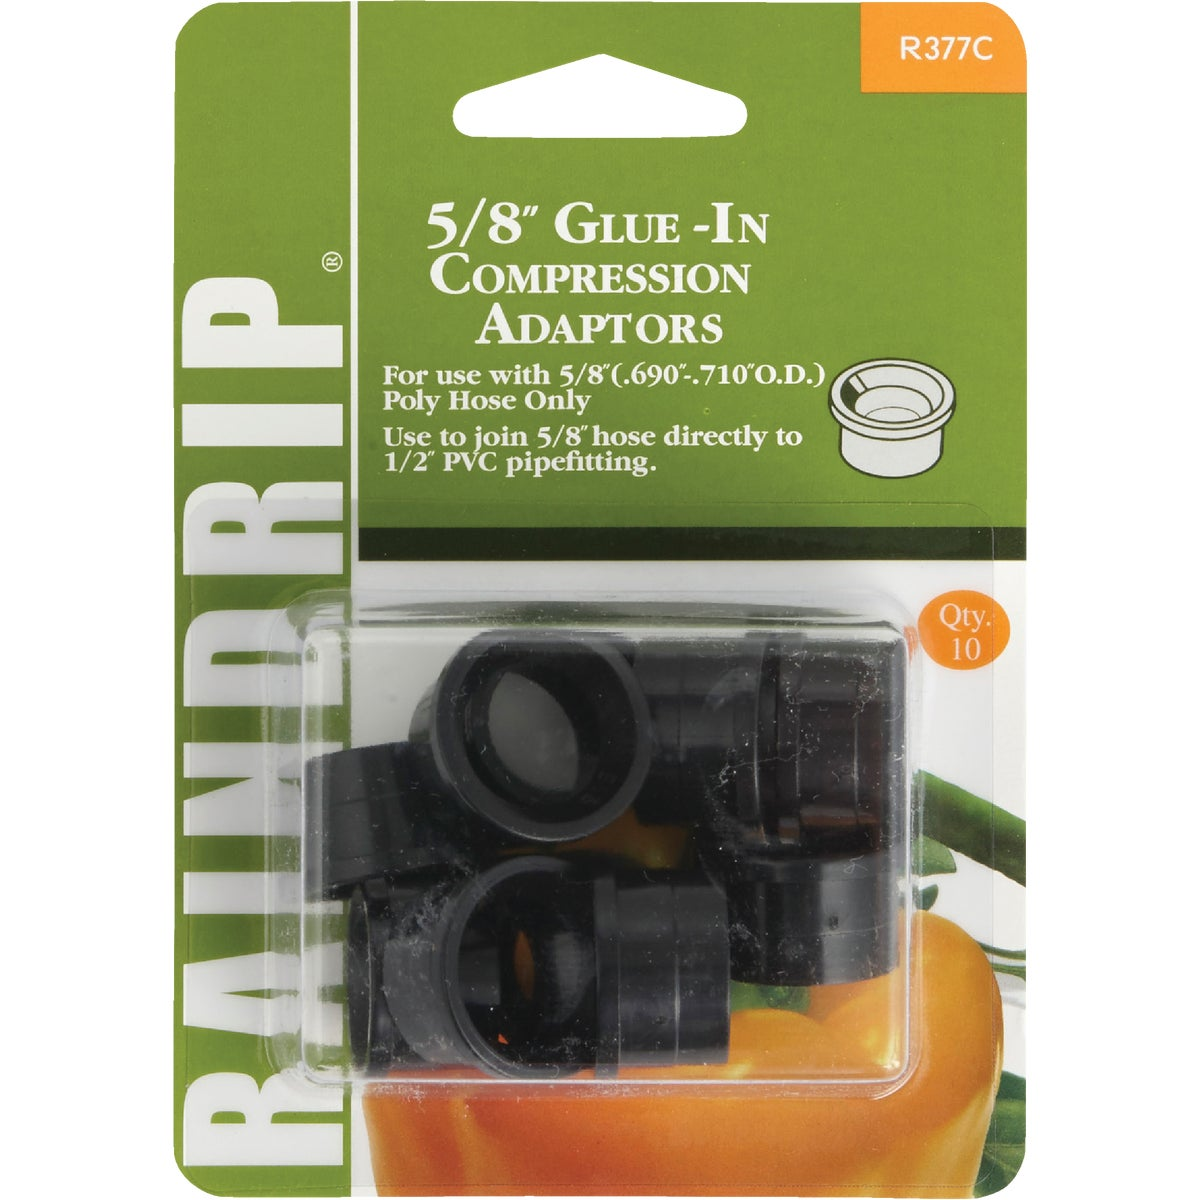 "5/8"" GLUE-IN ADAPTOR - R377CT by Raindrip Inc"